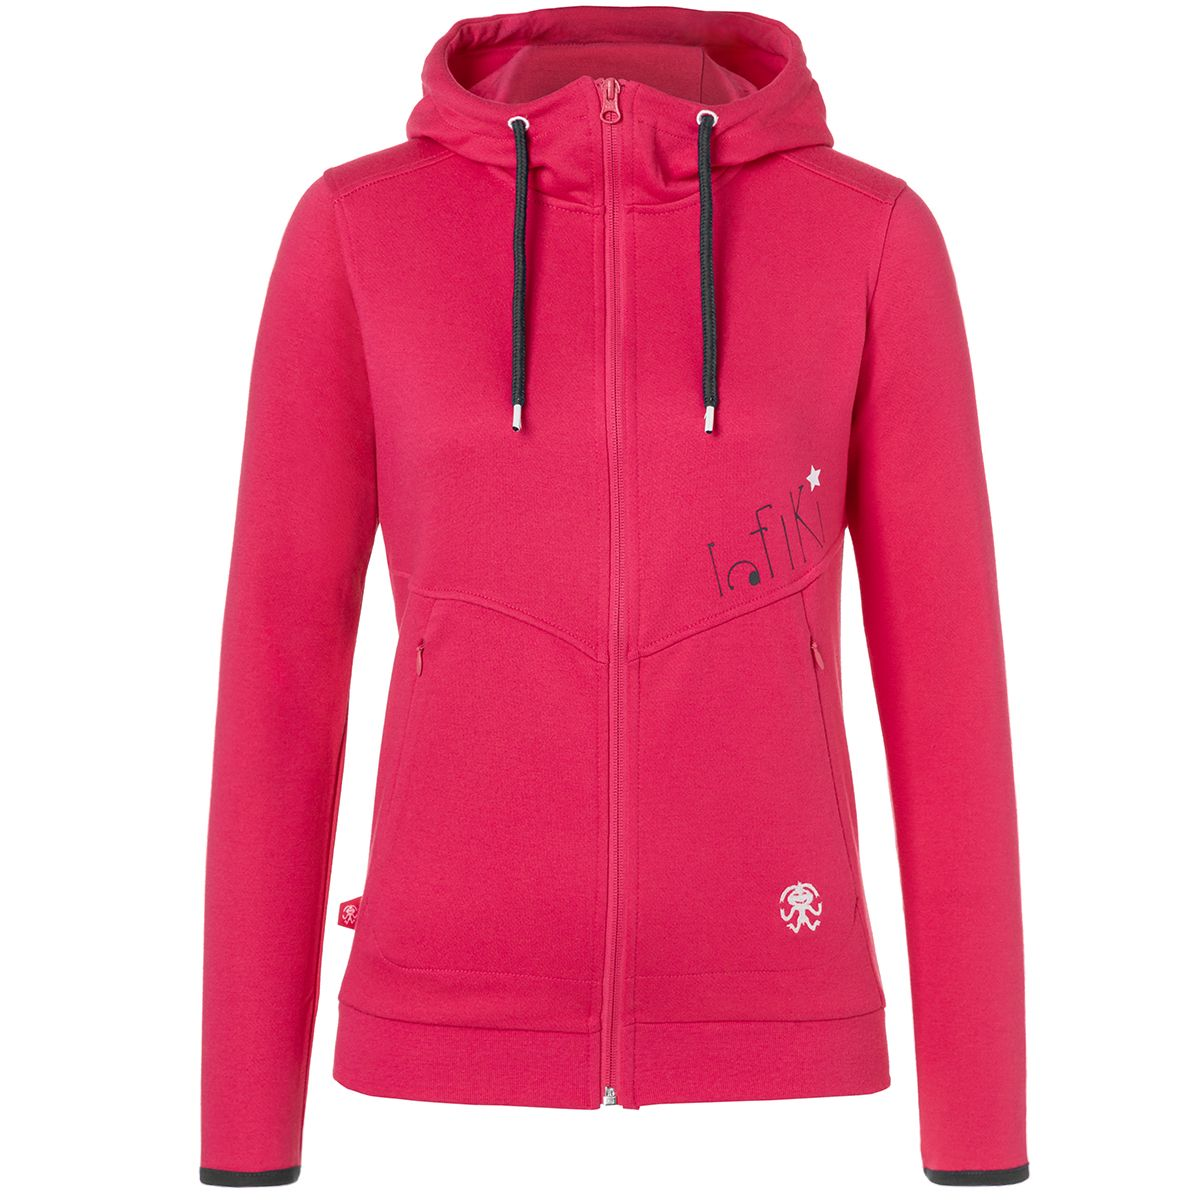 Rafiki Damen Root Hooded Jacke (Größe M, Pink) | Hoodies > Damen